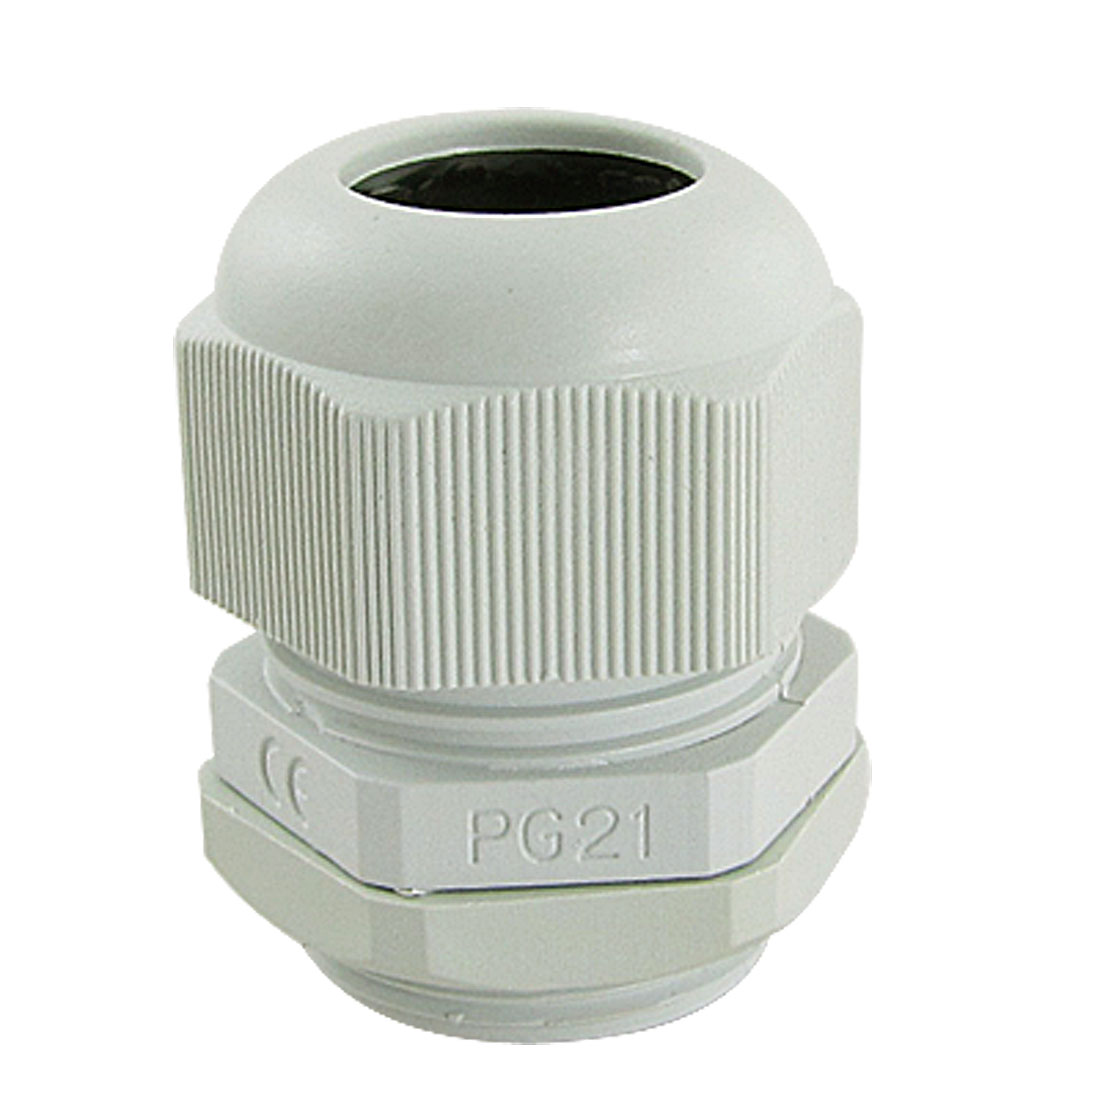 5 Pcs Waterproof PG21 Plastic Cable Connectors White